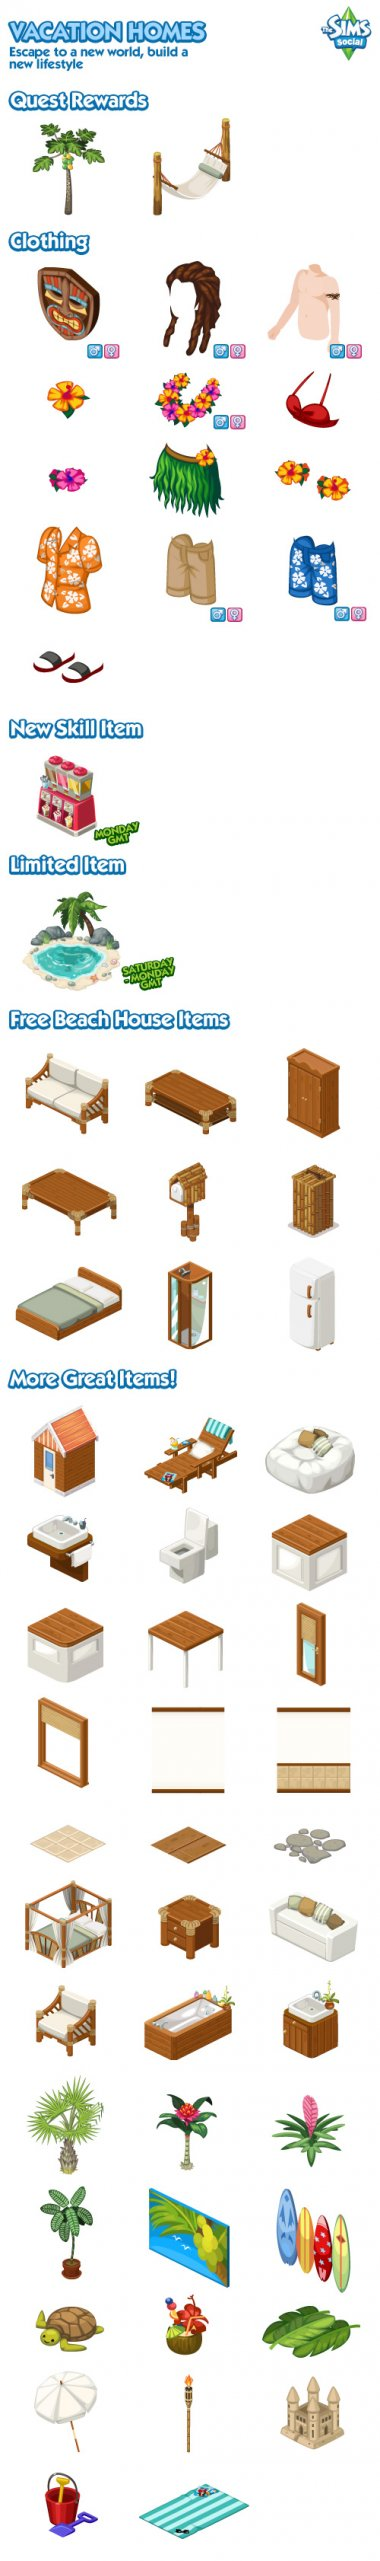 The Sims Social Vacation Homes items